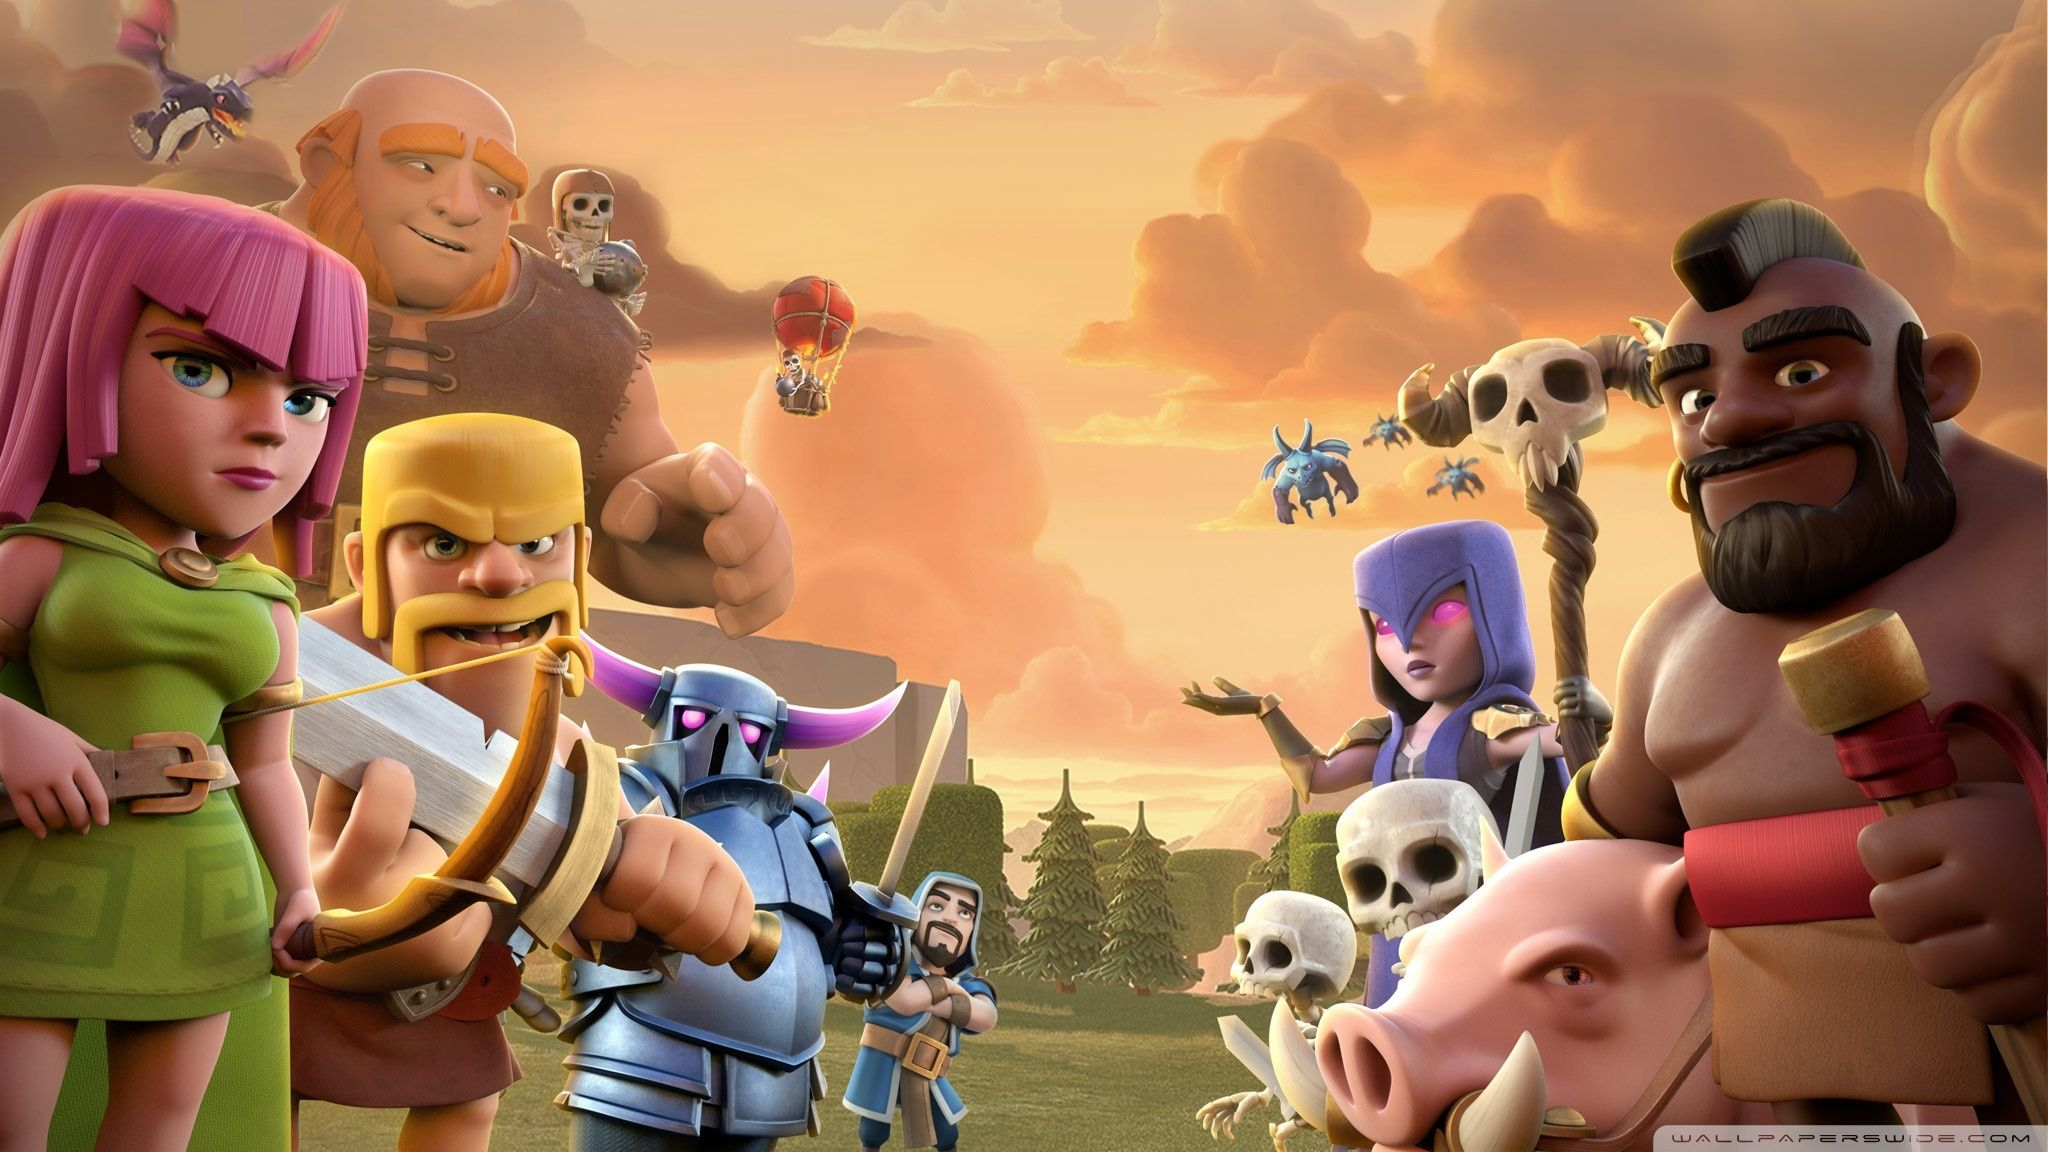 Wallpaper Hd Android Clash Of Clans